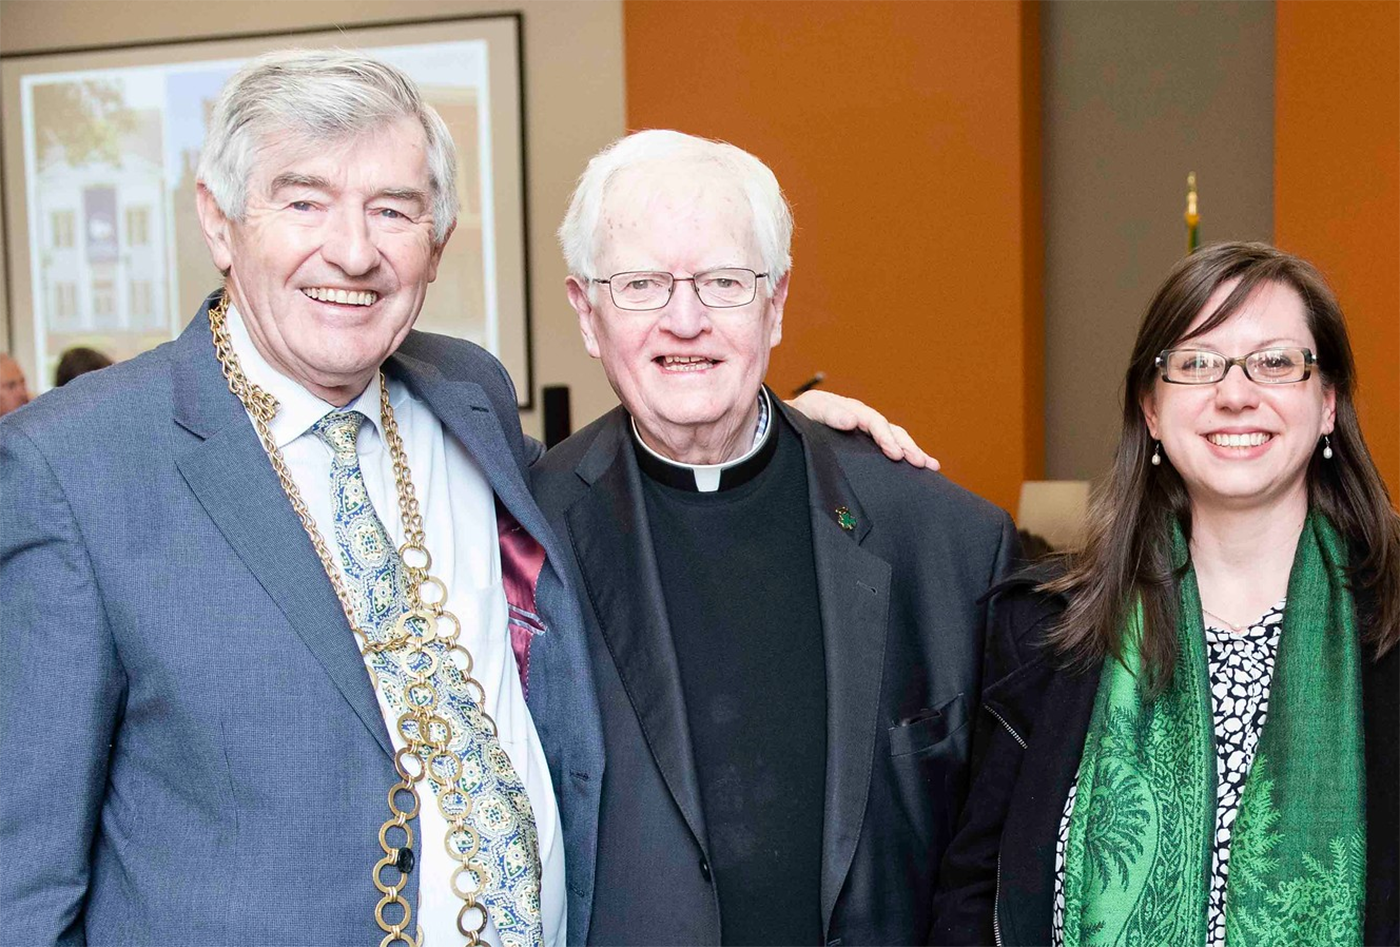 Above: Wearing his chain of office, the Mayor of Wexford Town,    Tony Dempsey    (left), connects with the Bishop Emeritus of the Diocese of Savannah, Most Rev.    J. Kevin Boland    (center), and the Director of the Diocesan Archives,    Katy Pereira    (right).